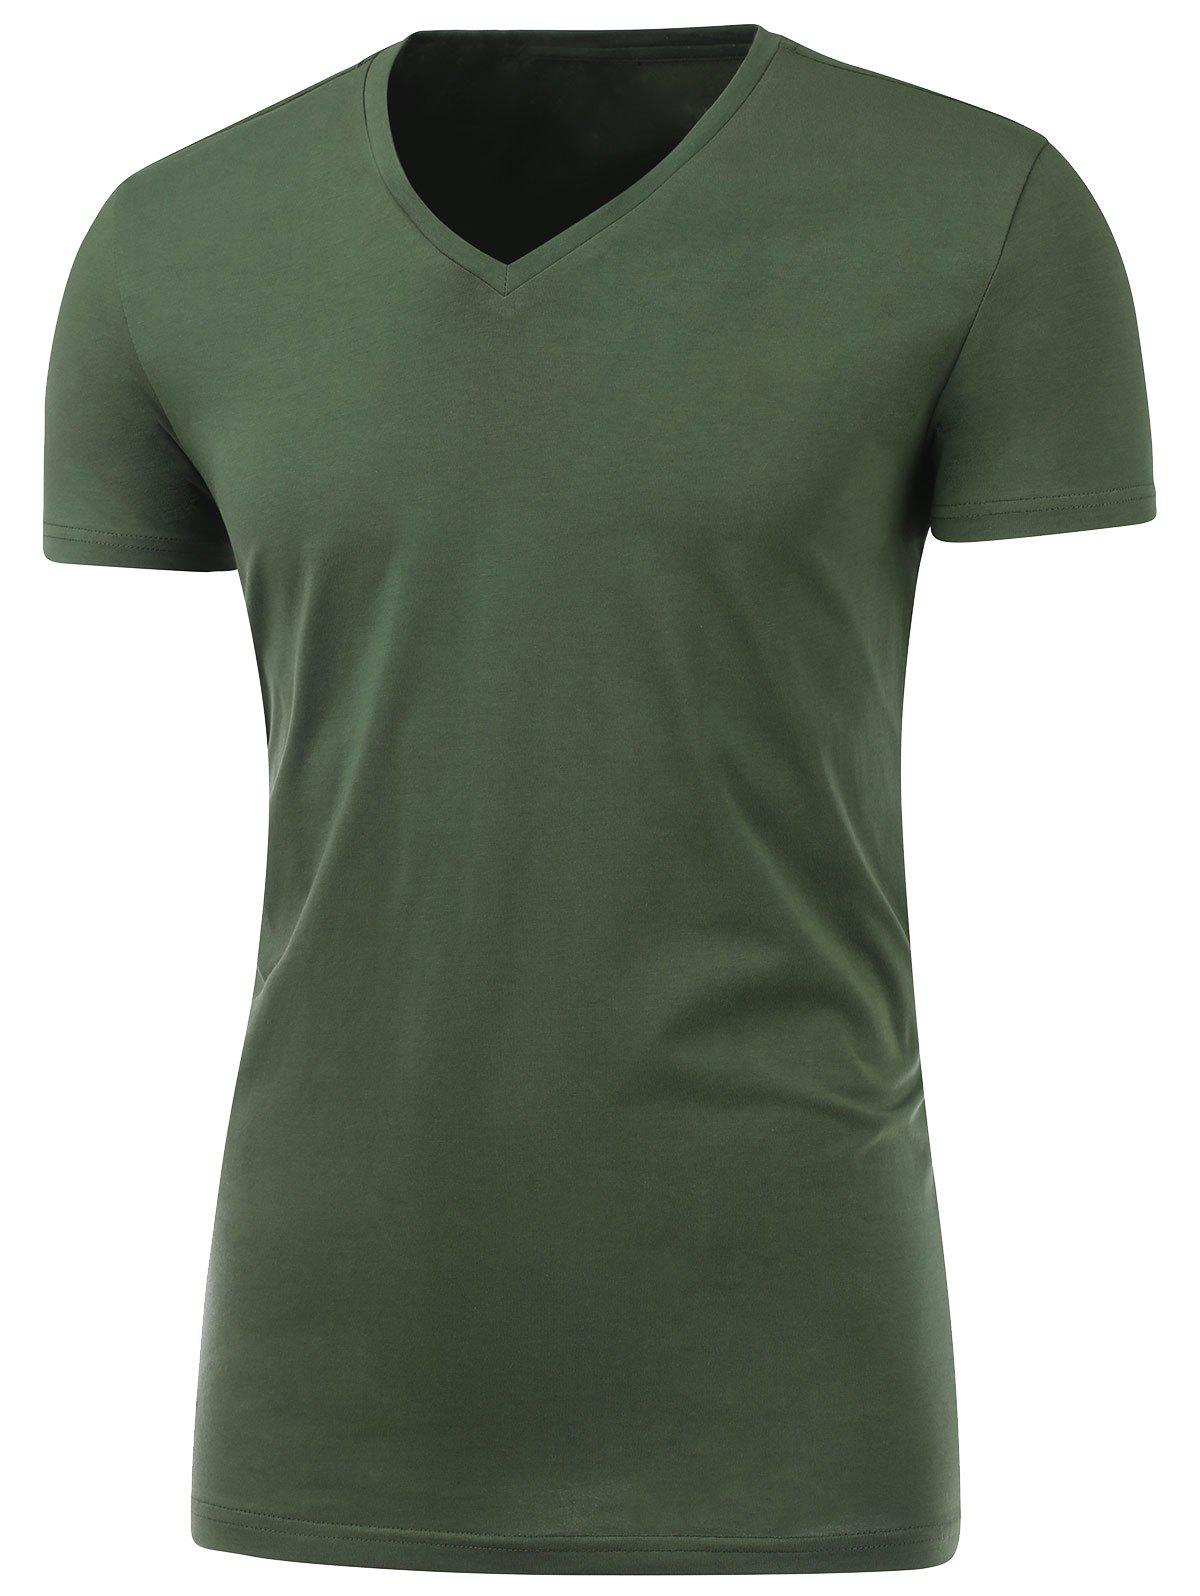 Slim Fit Short Sleeve V Neck Tee - BLACKISH GREEN L